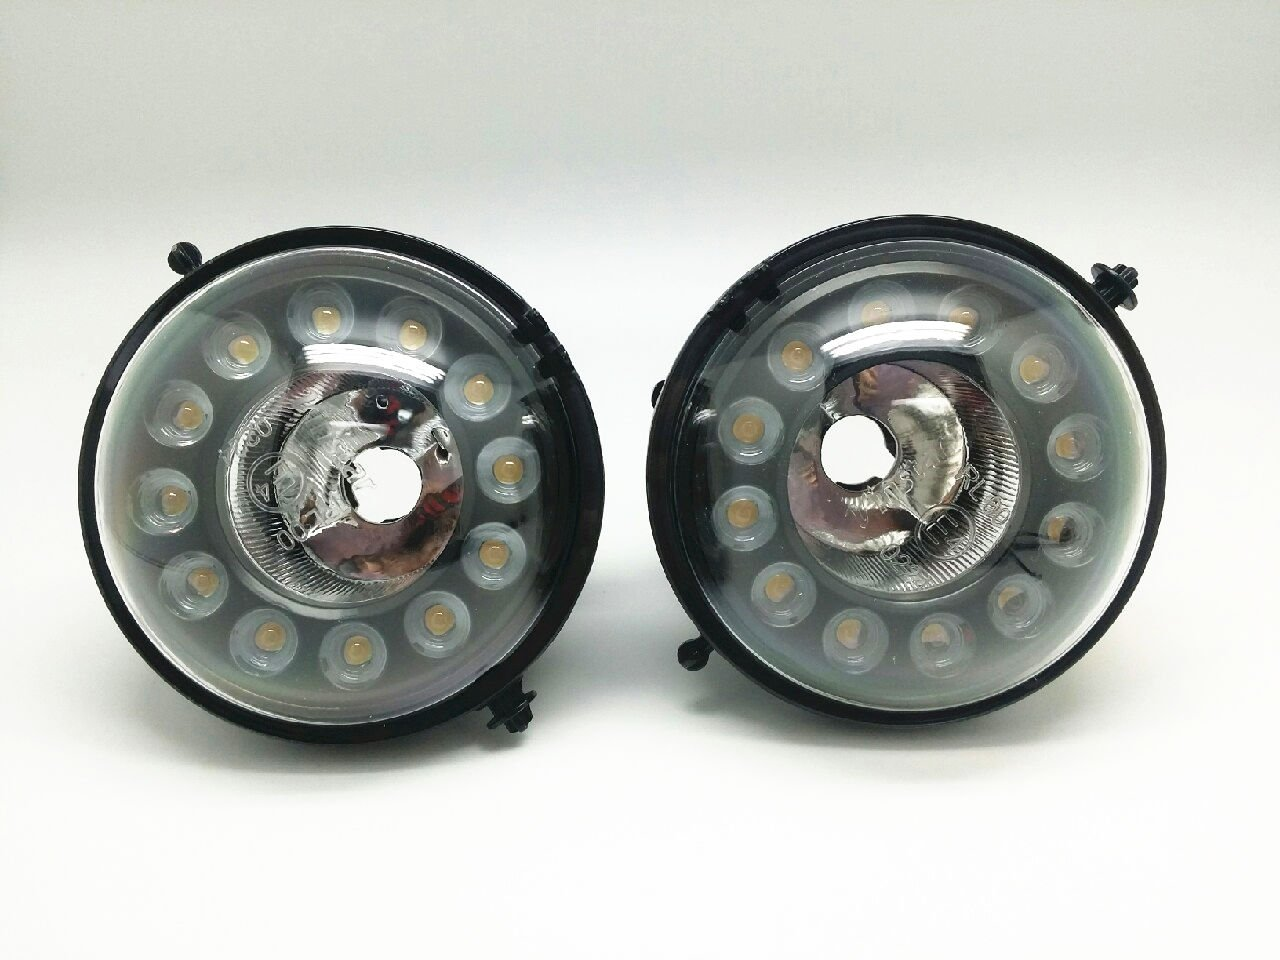 (2) luces antiniebla LED CREE, luces de conducción diurna, kit de montaje: Amazon.es: Coche y moto